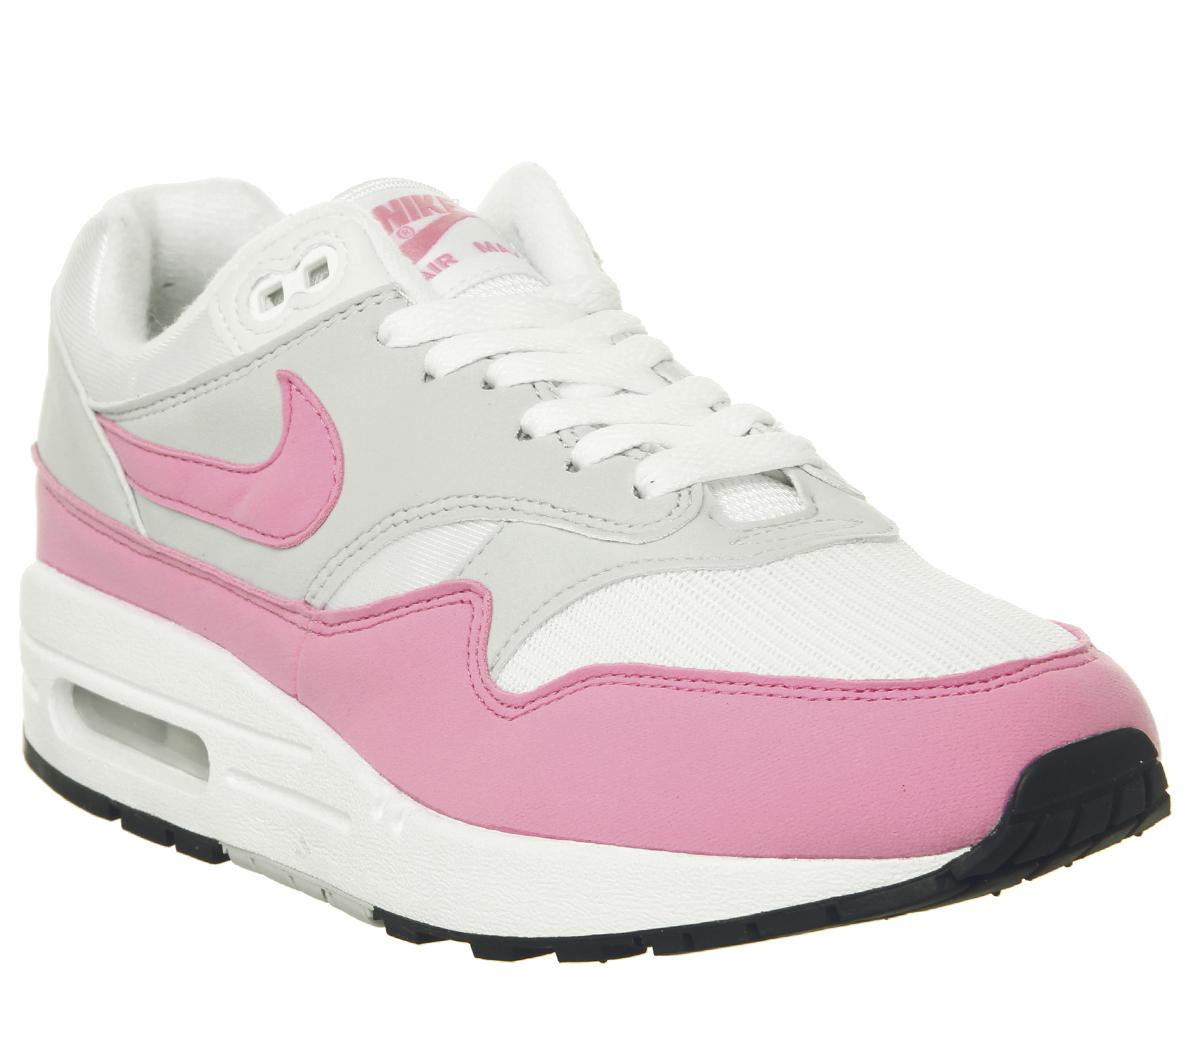 Nike Air Max 1 Trainers White Psychic